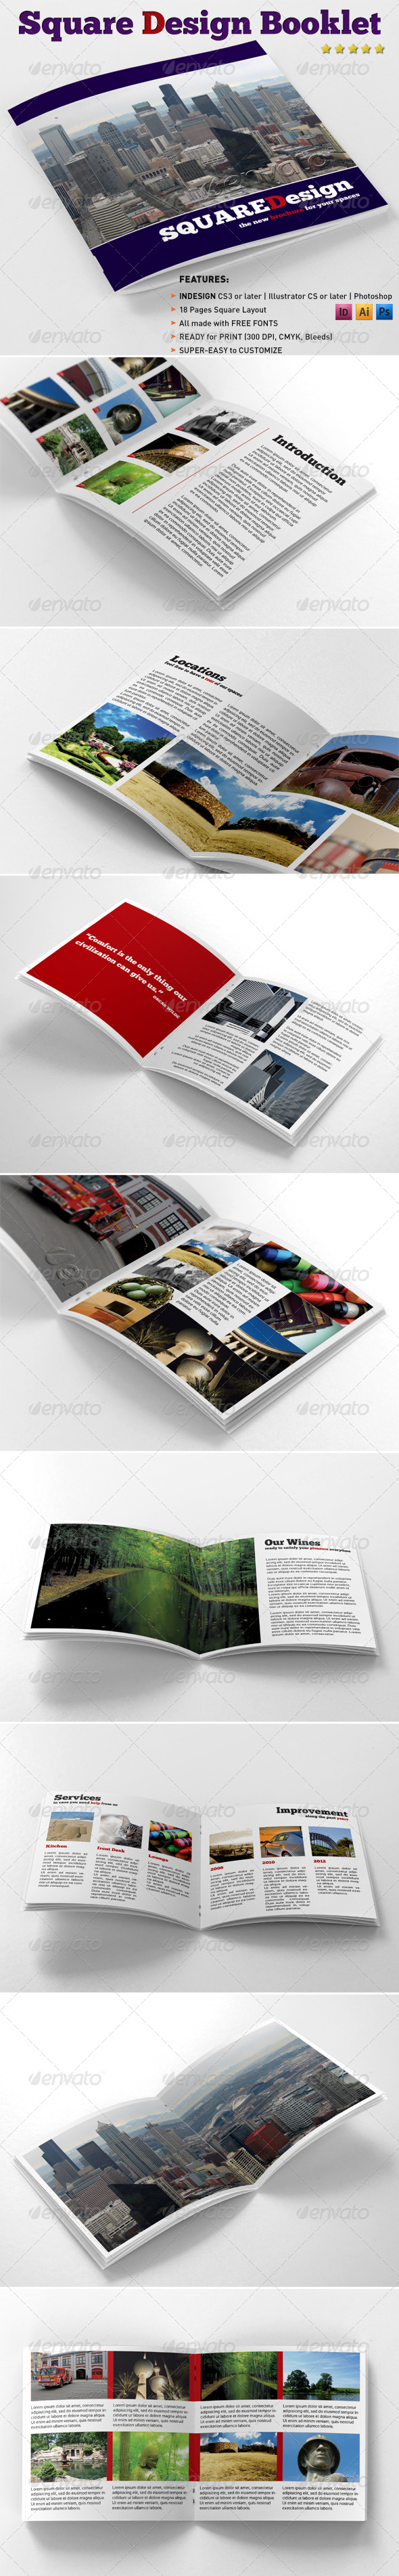 Square Design Booklet - Catalogs Brochures